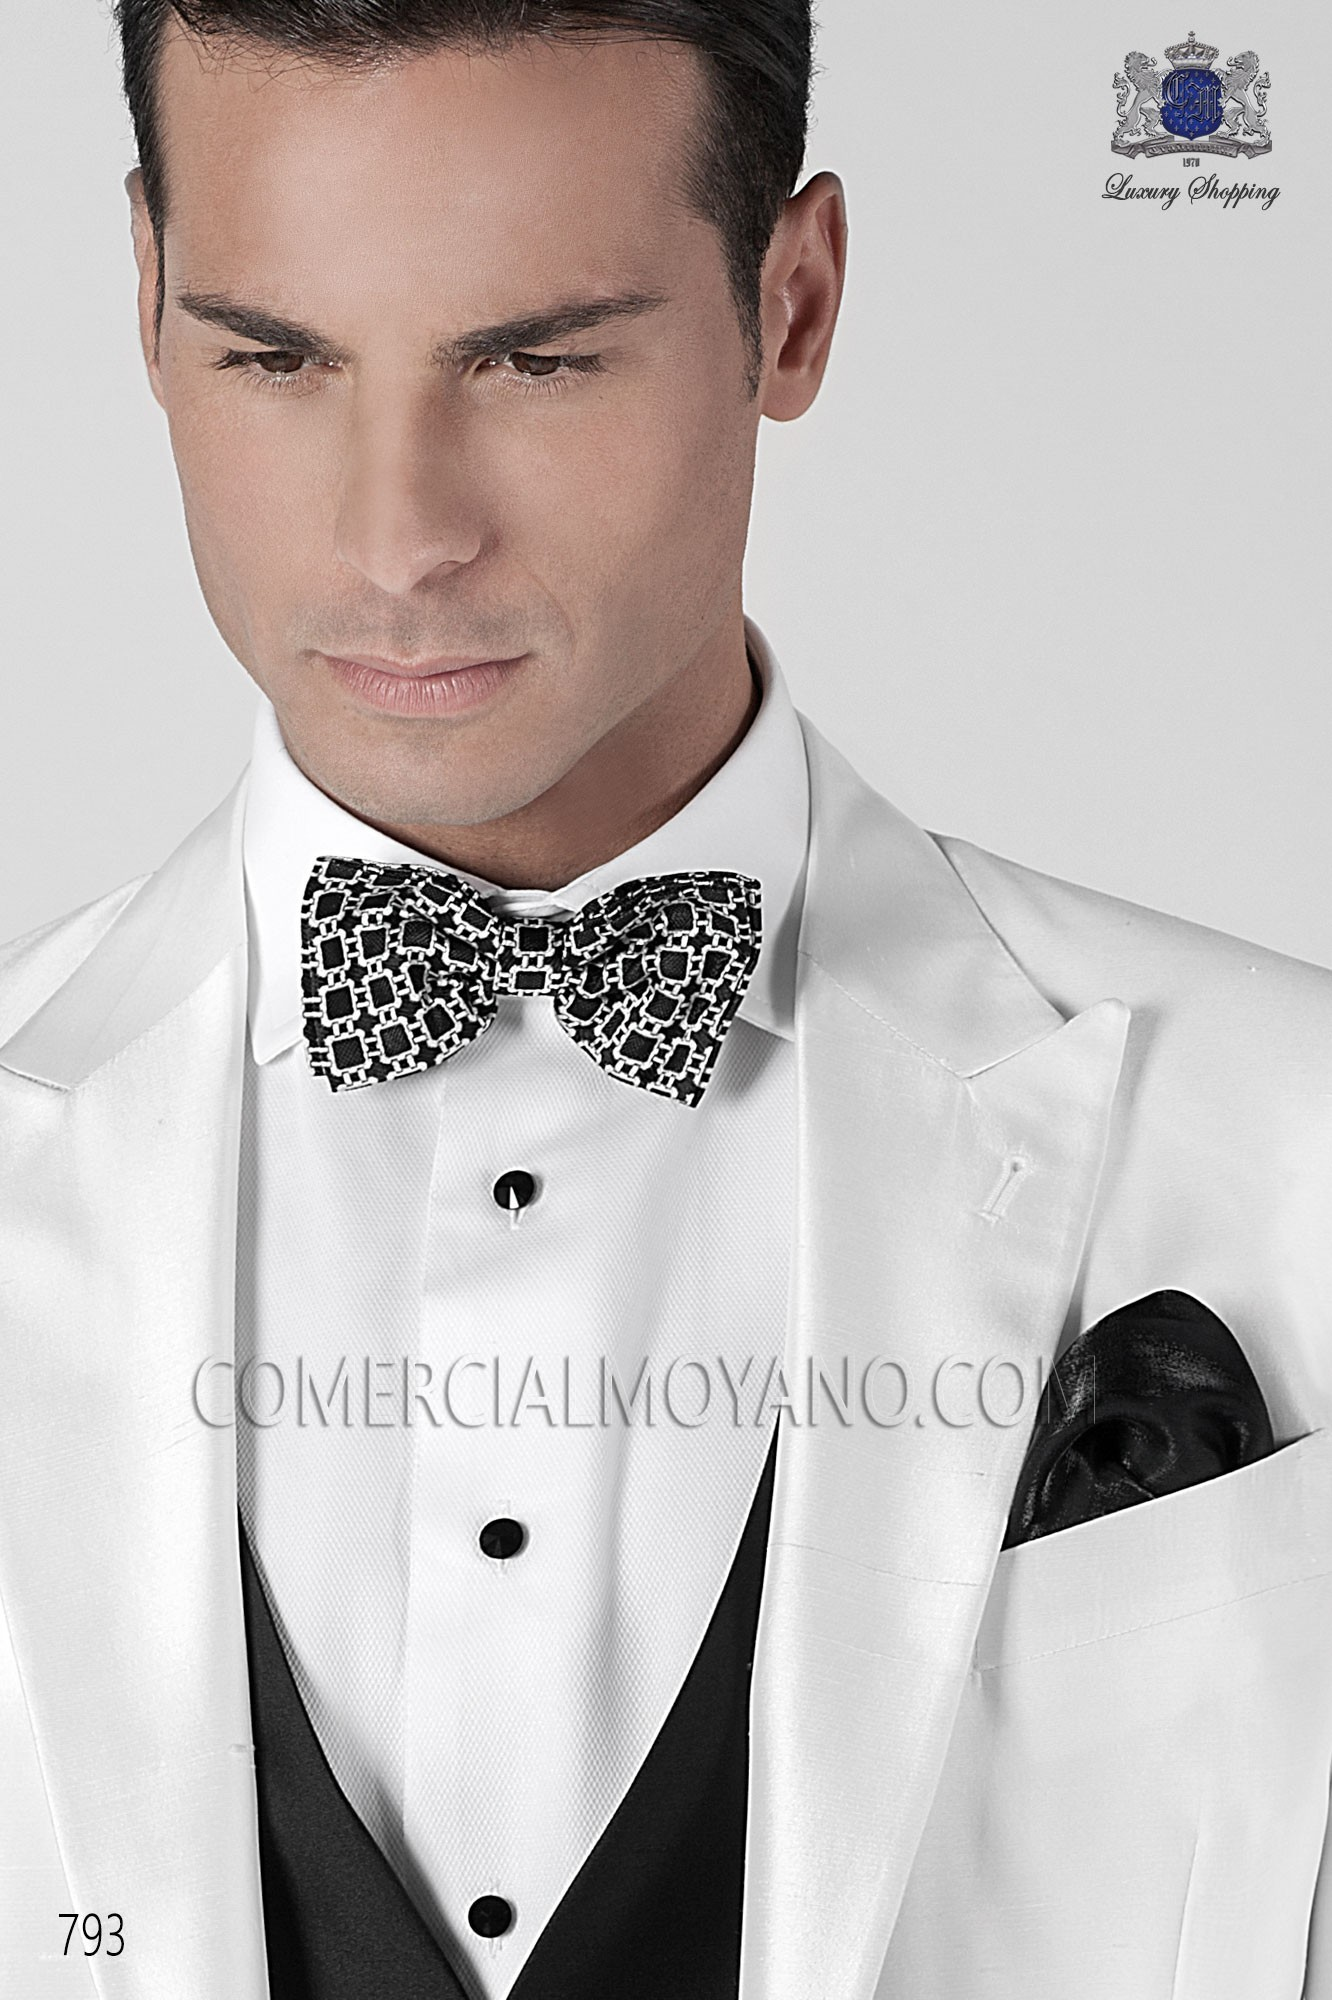 Italian blacktie COLOR men wedding suit, model: 793 Ottavio Nuccio Gala Black Tie Collection